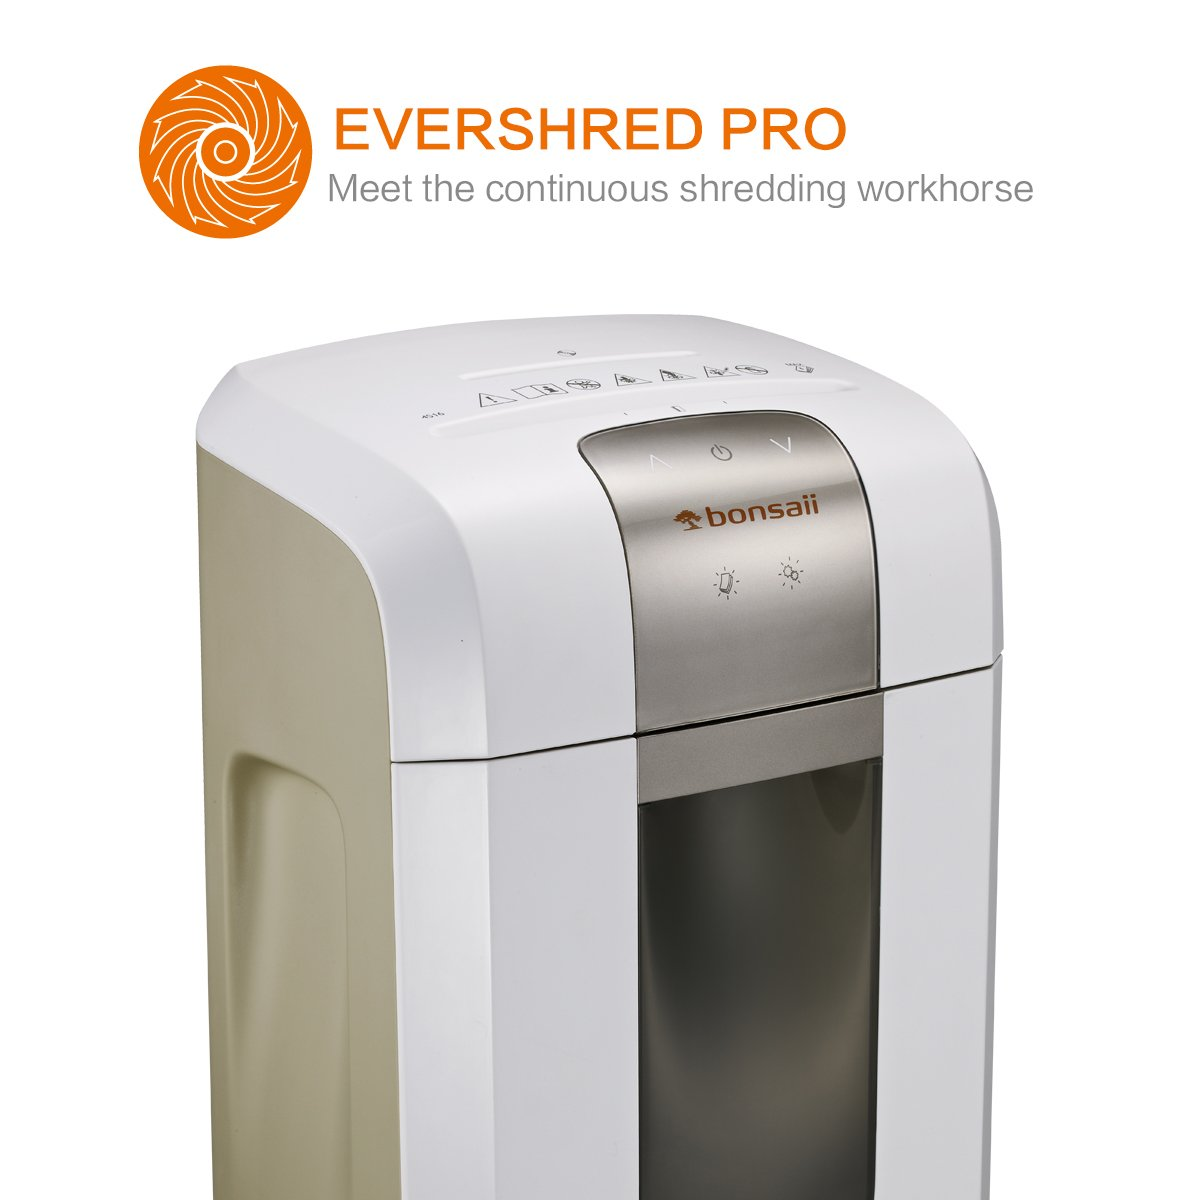 4S30 10-Sheet Micro cut with 7.9 Gallons Wasterbasket Bonsaii Paper Shredder 25//64 inches White 240 Minutes Continuous Shredding